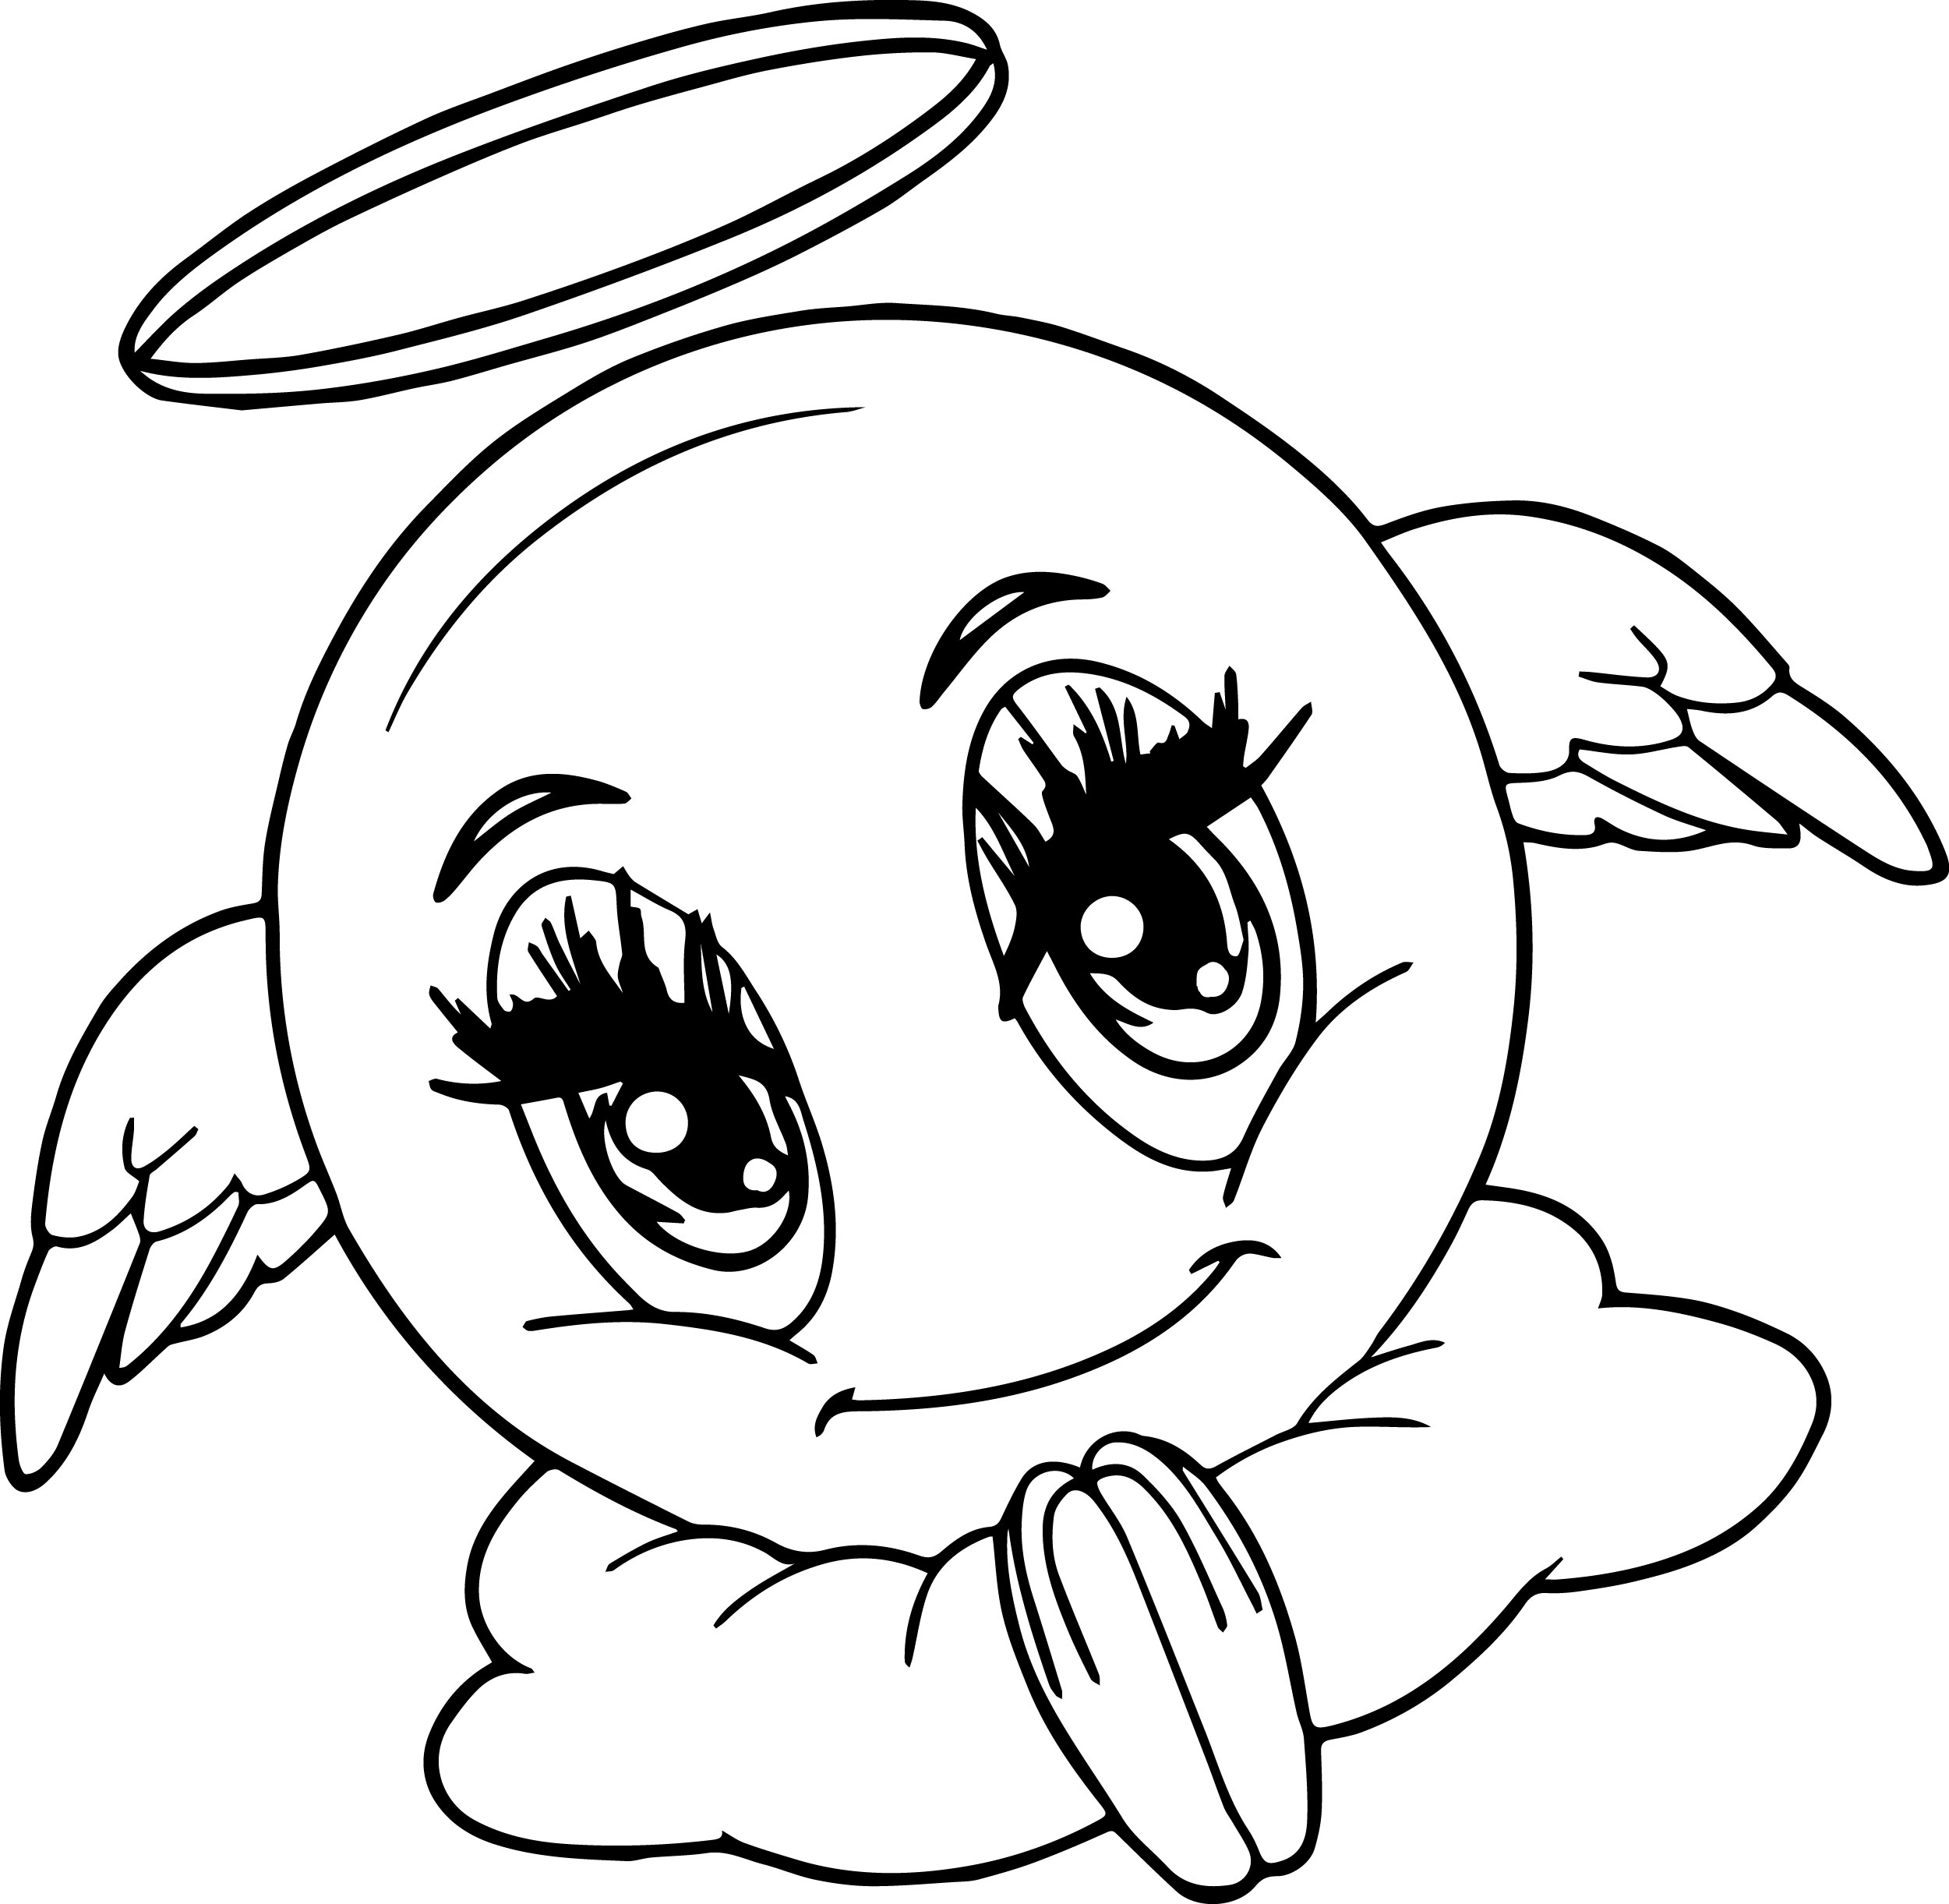 2501x2443 Perfect Emoji Coloring Pages Best For Kids